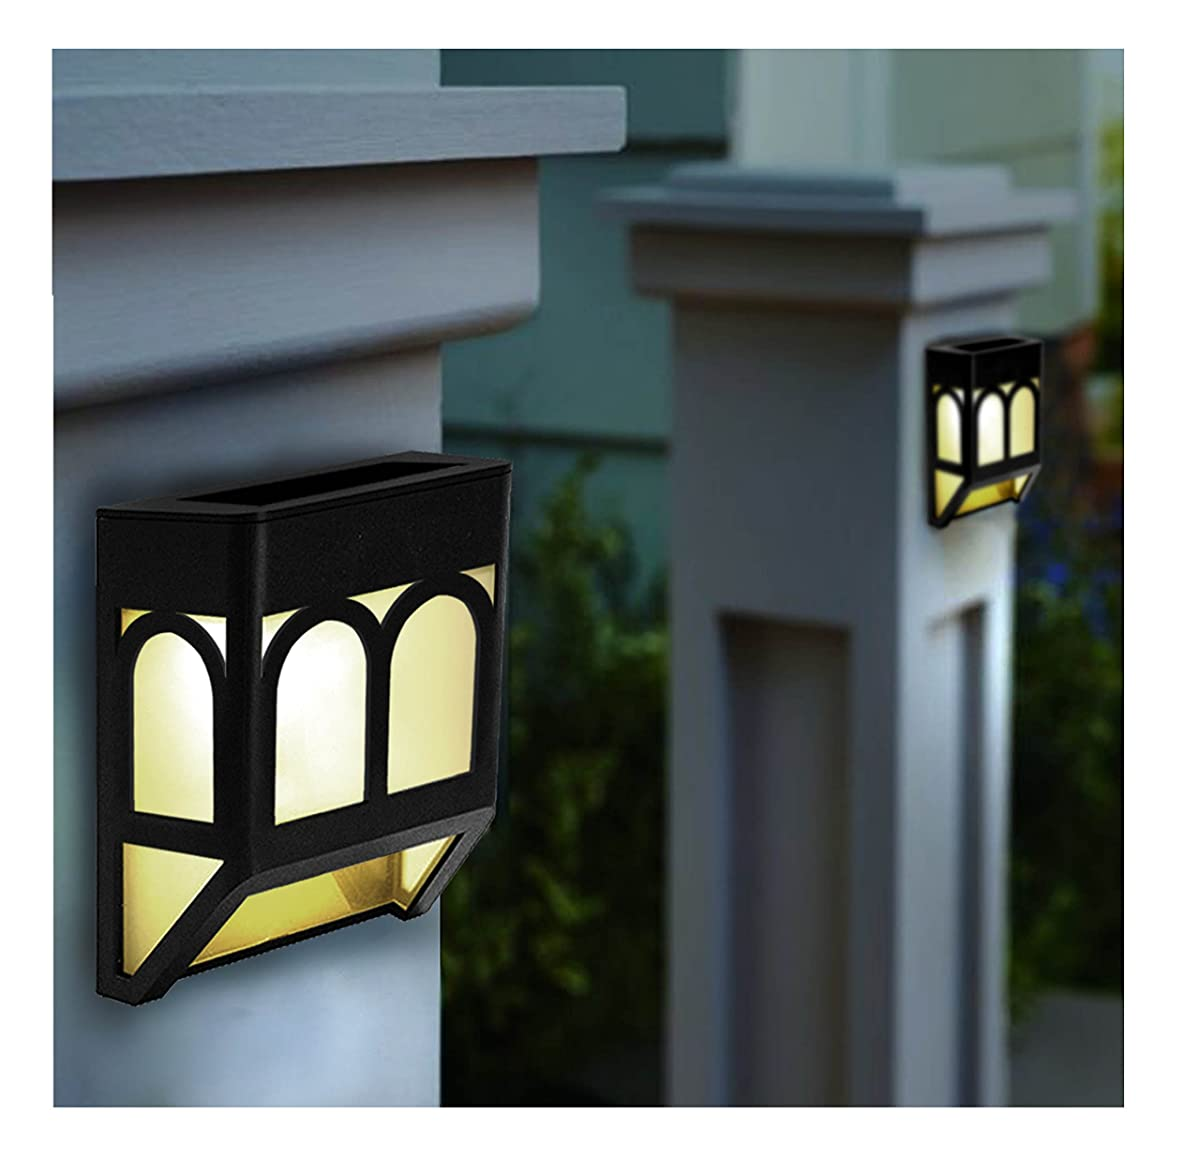 Upgrade Solar Powered Wall Mount Lights Landscape Garden Yard Fence Outdoor Lights White Warm (4)